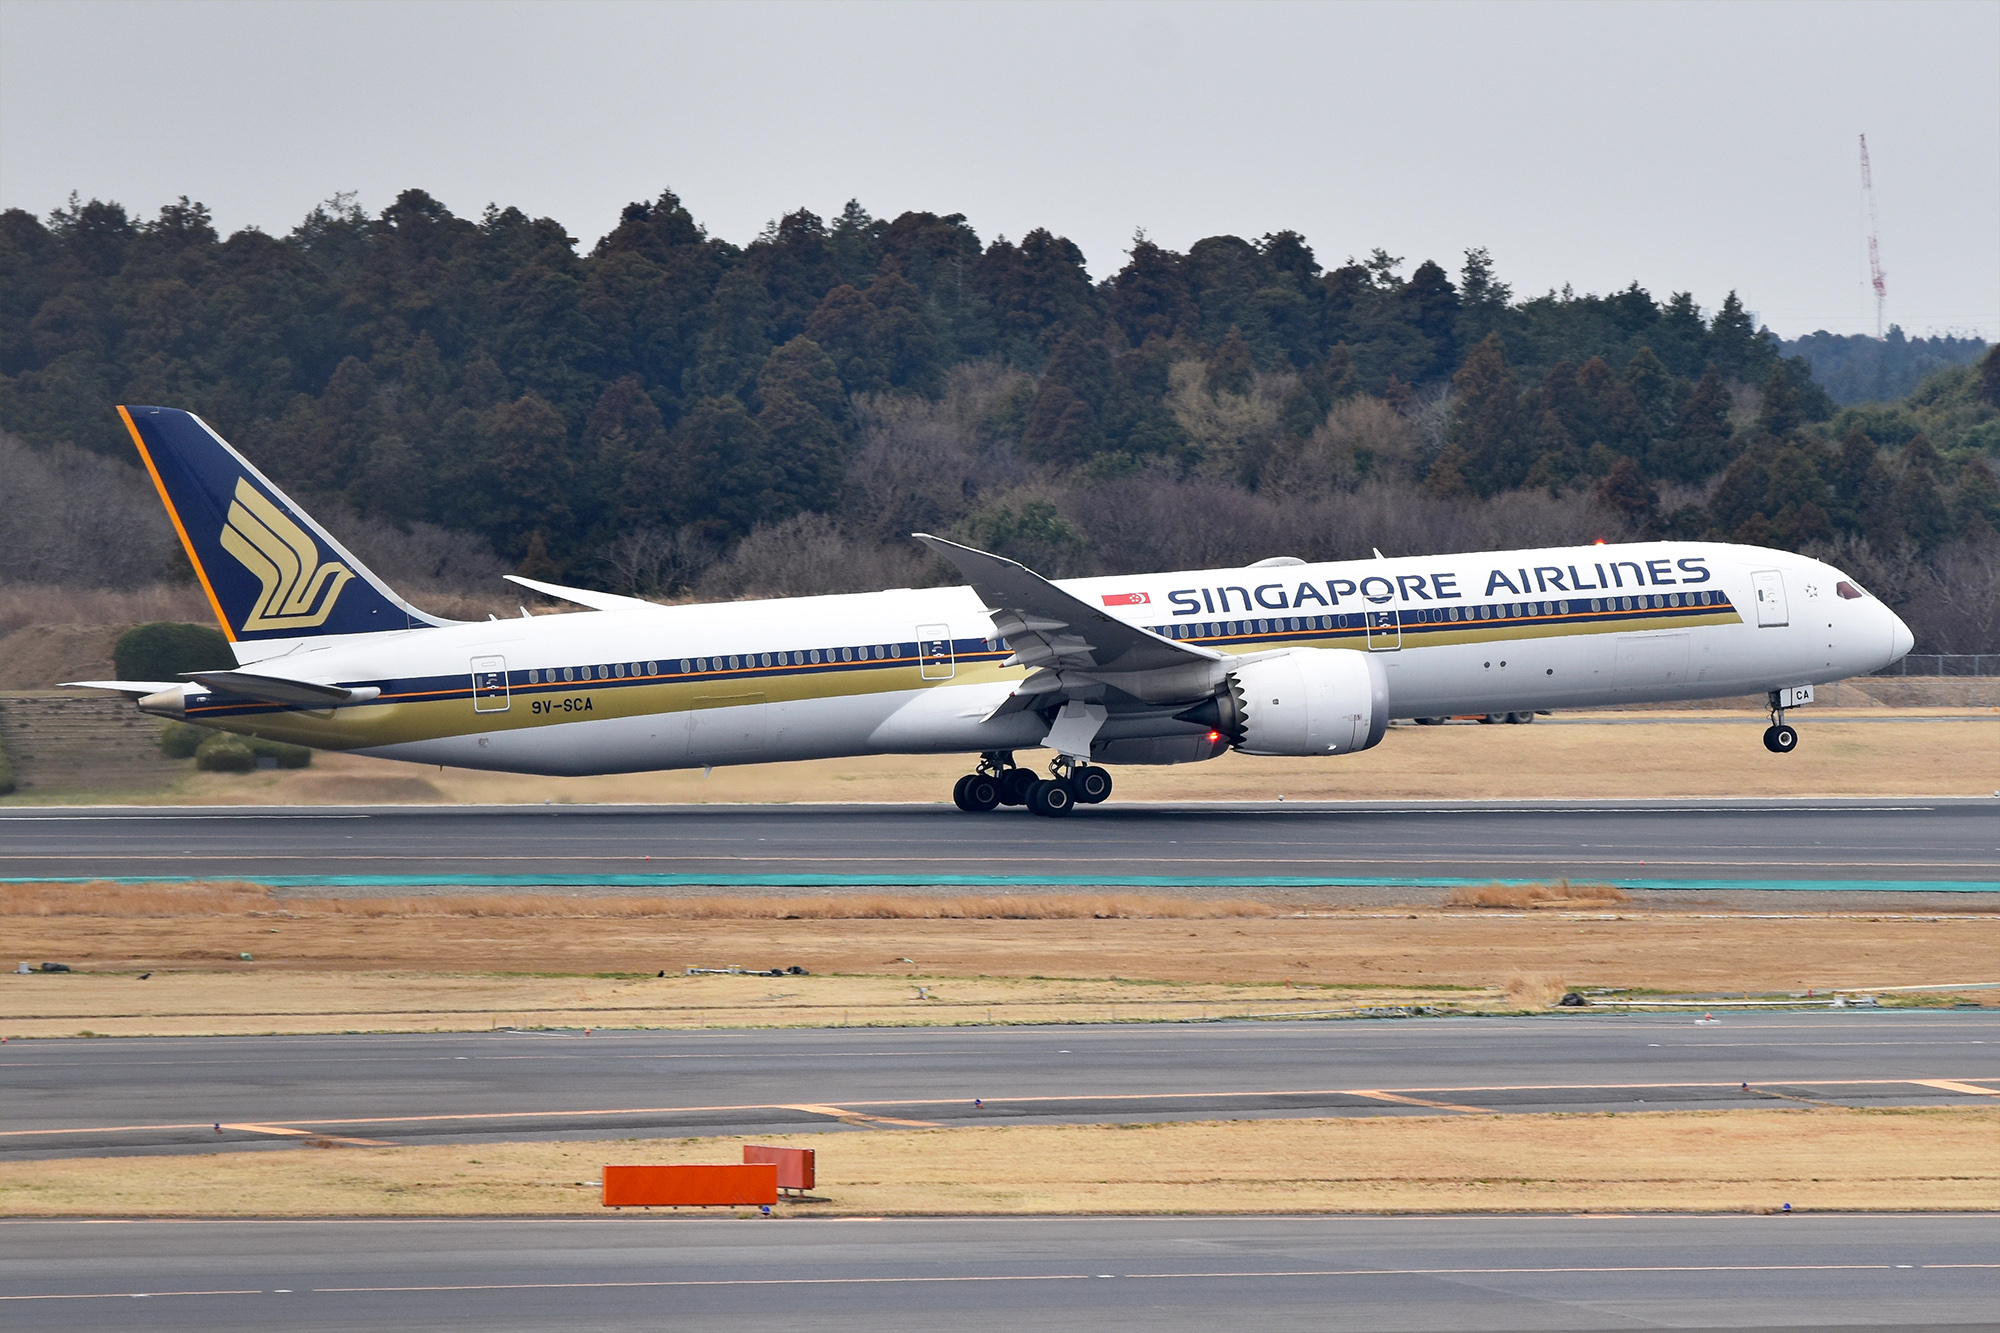 SIA's Taipei flights go all-787 from October, as Hong Kong capacity is cut